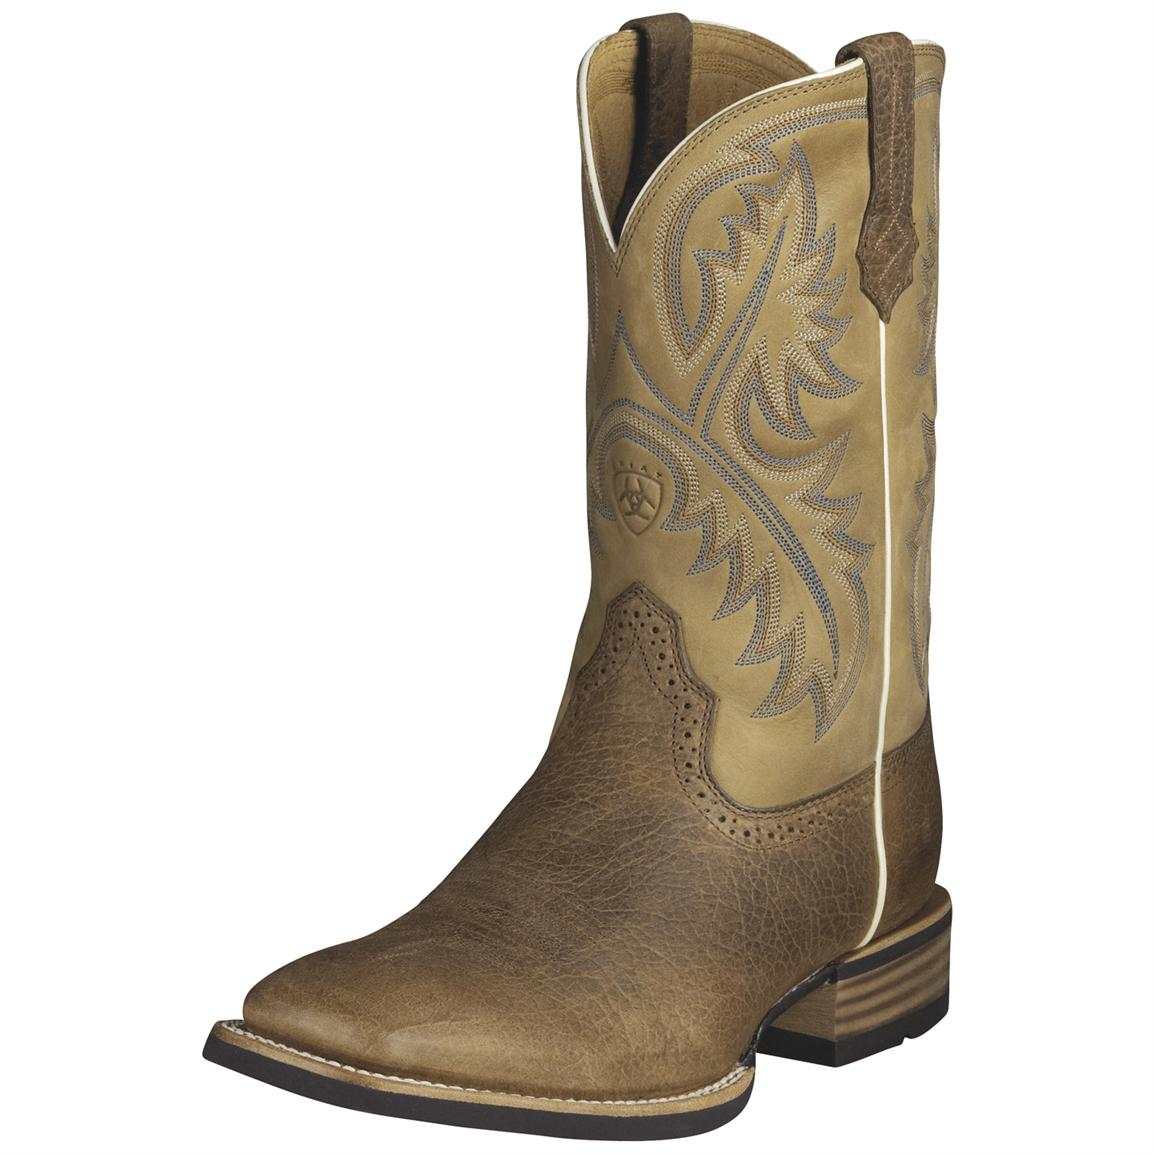 Men's Ariat® 11 inch Quickdraw Western Boots, Bark